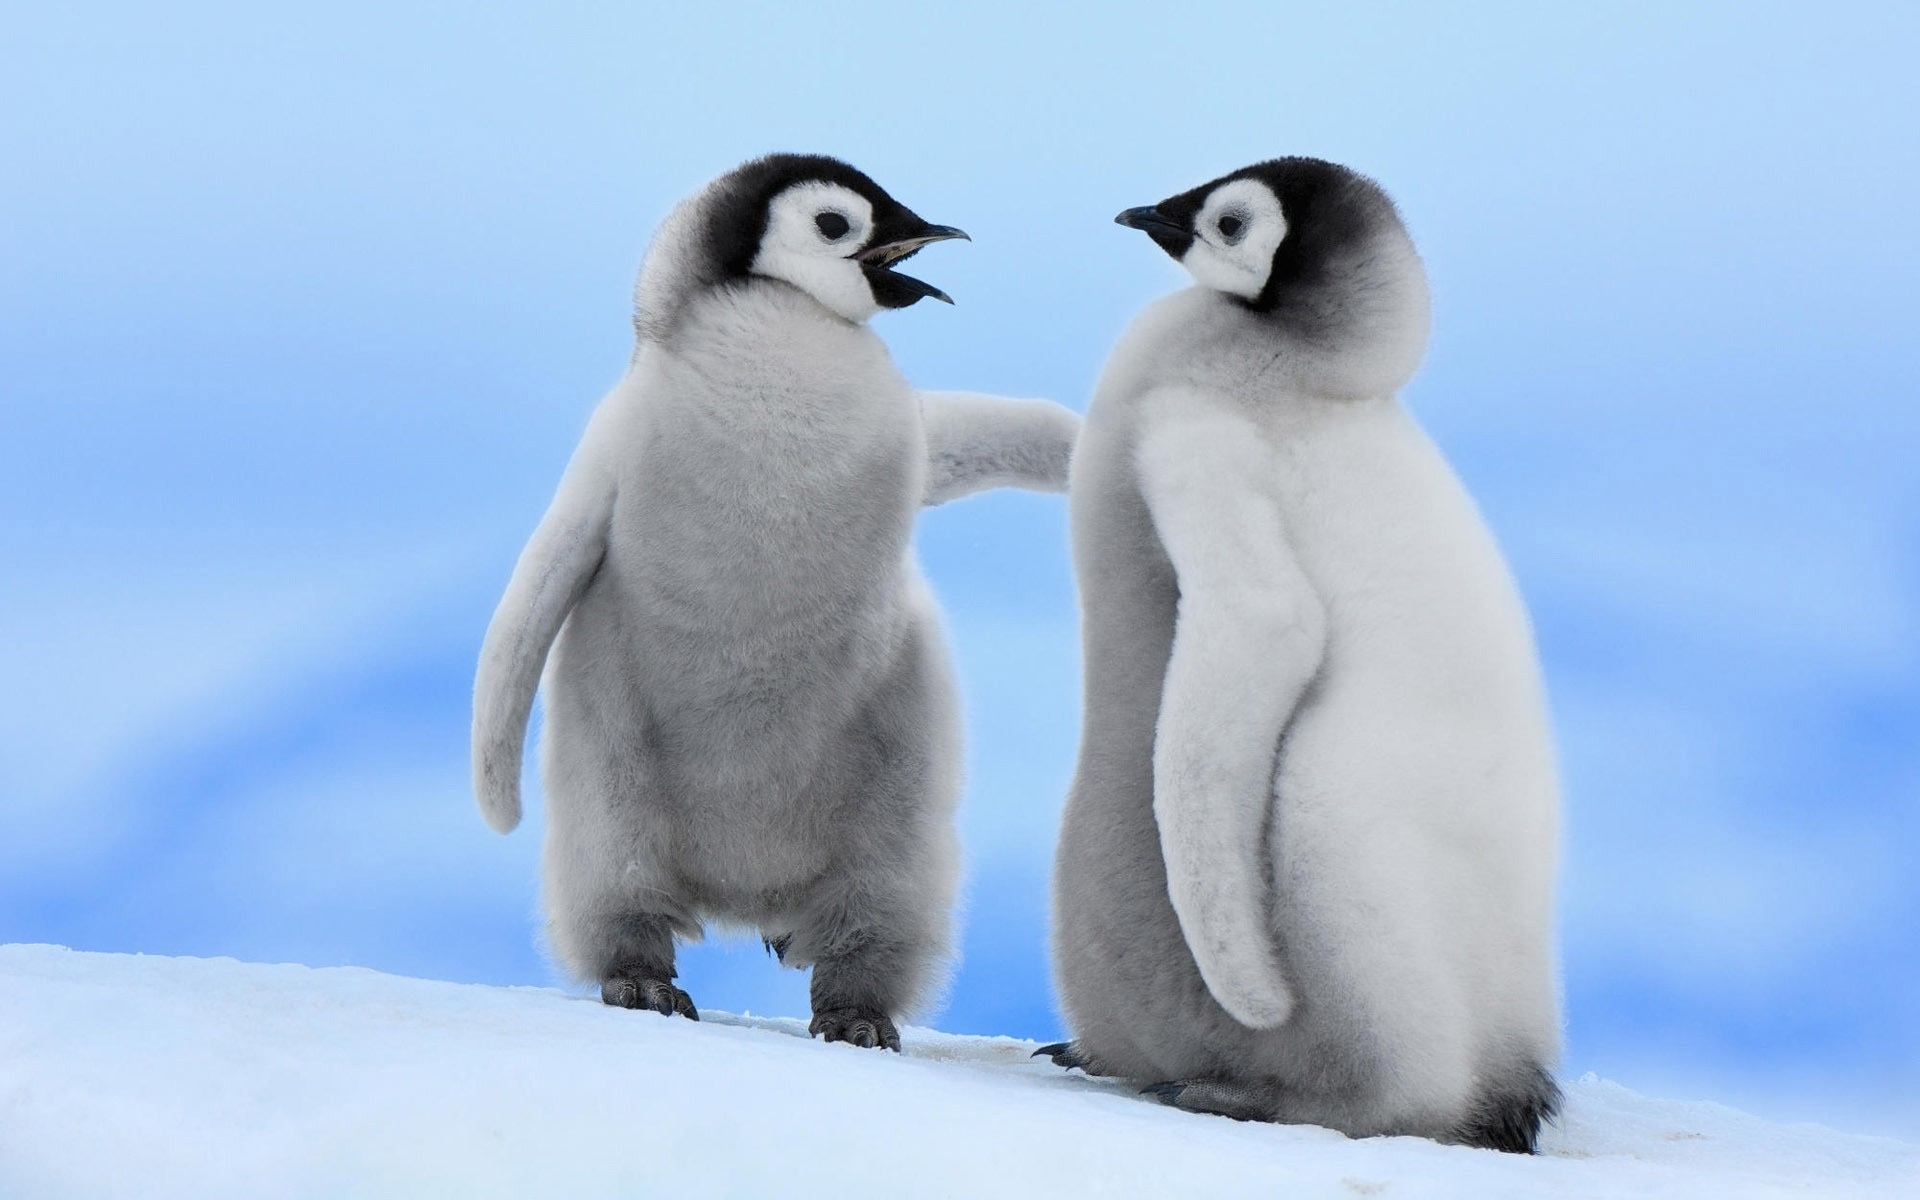 Two young penguin